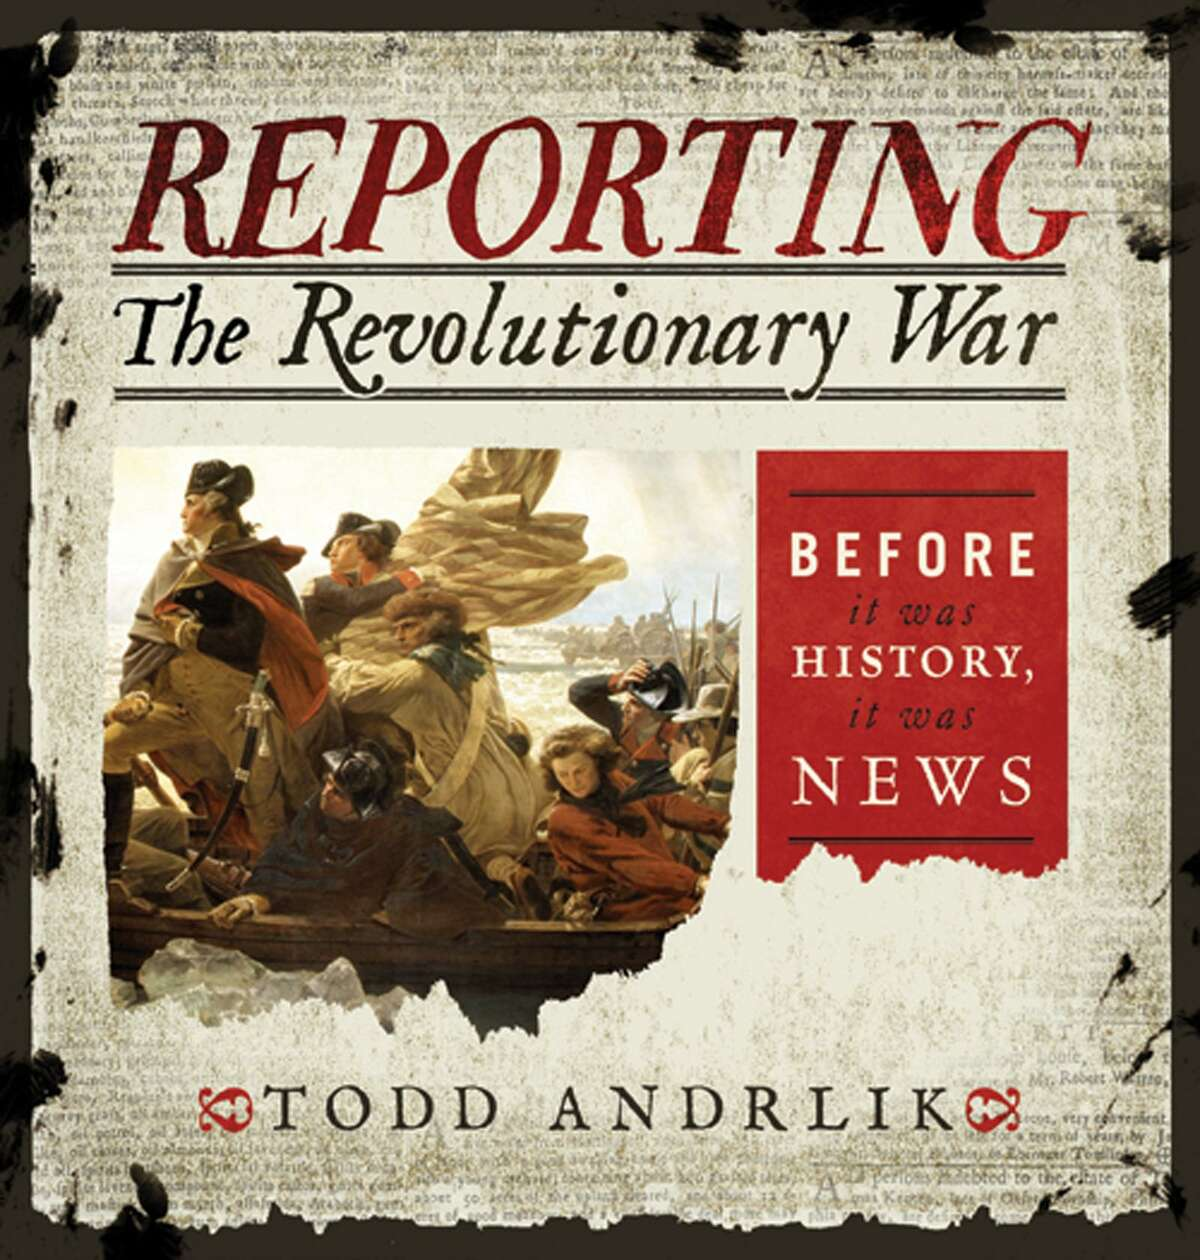 This photo provided by Todd Andrlik shows the cover of his book